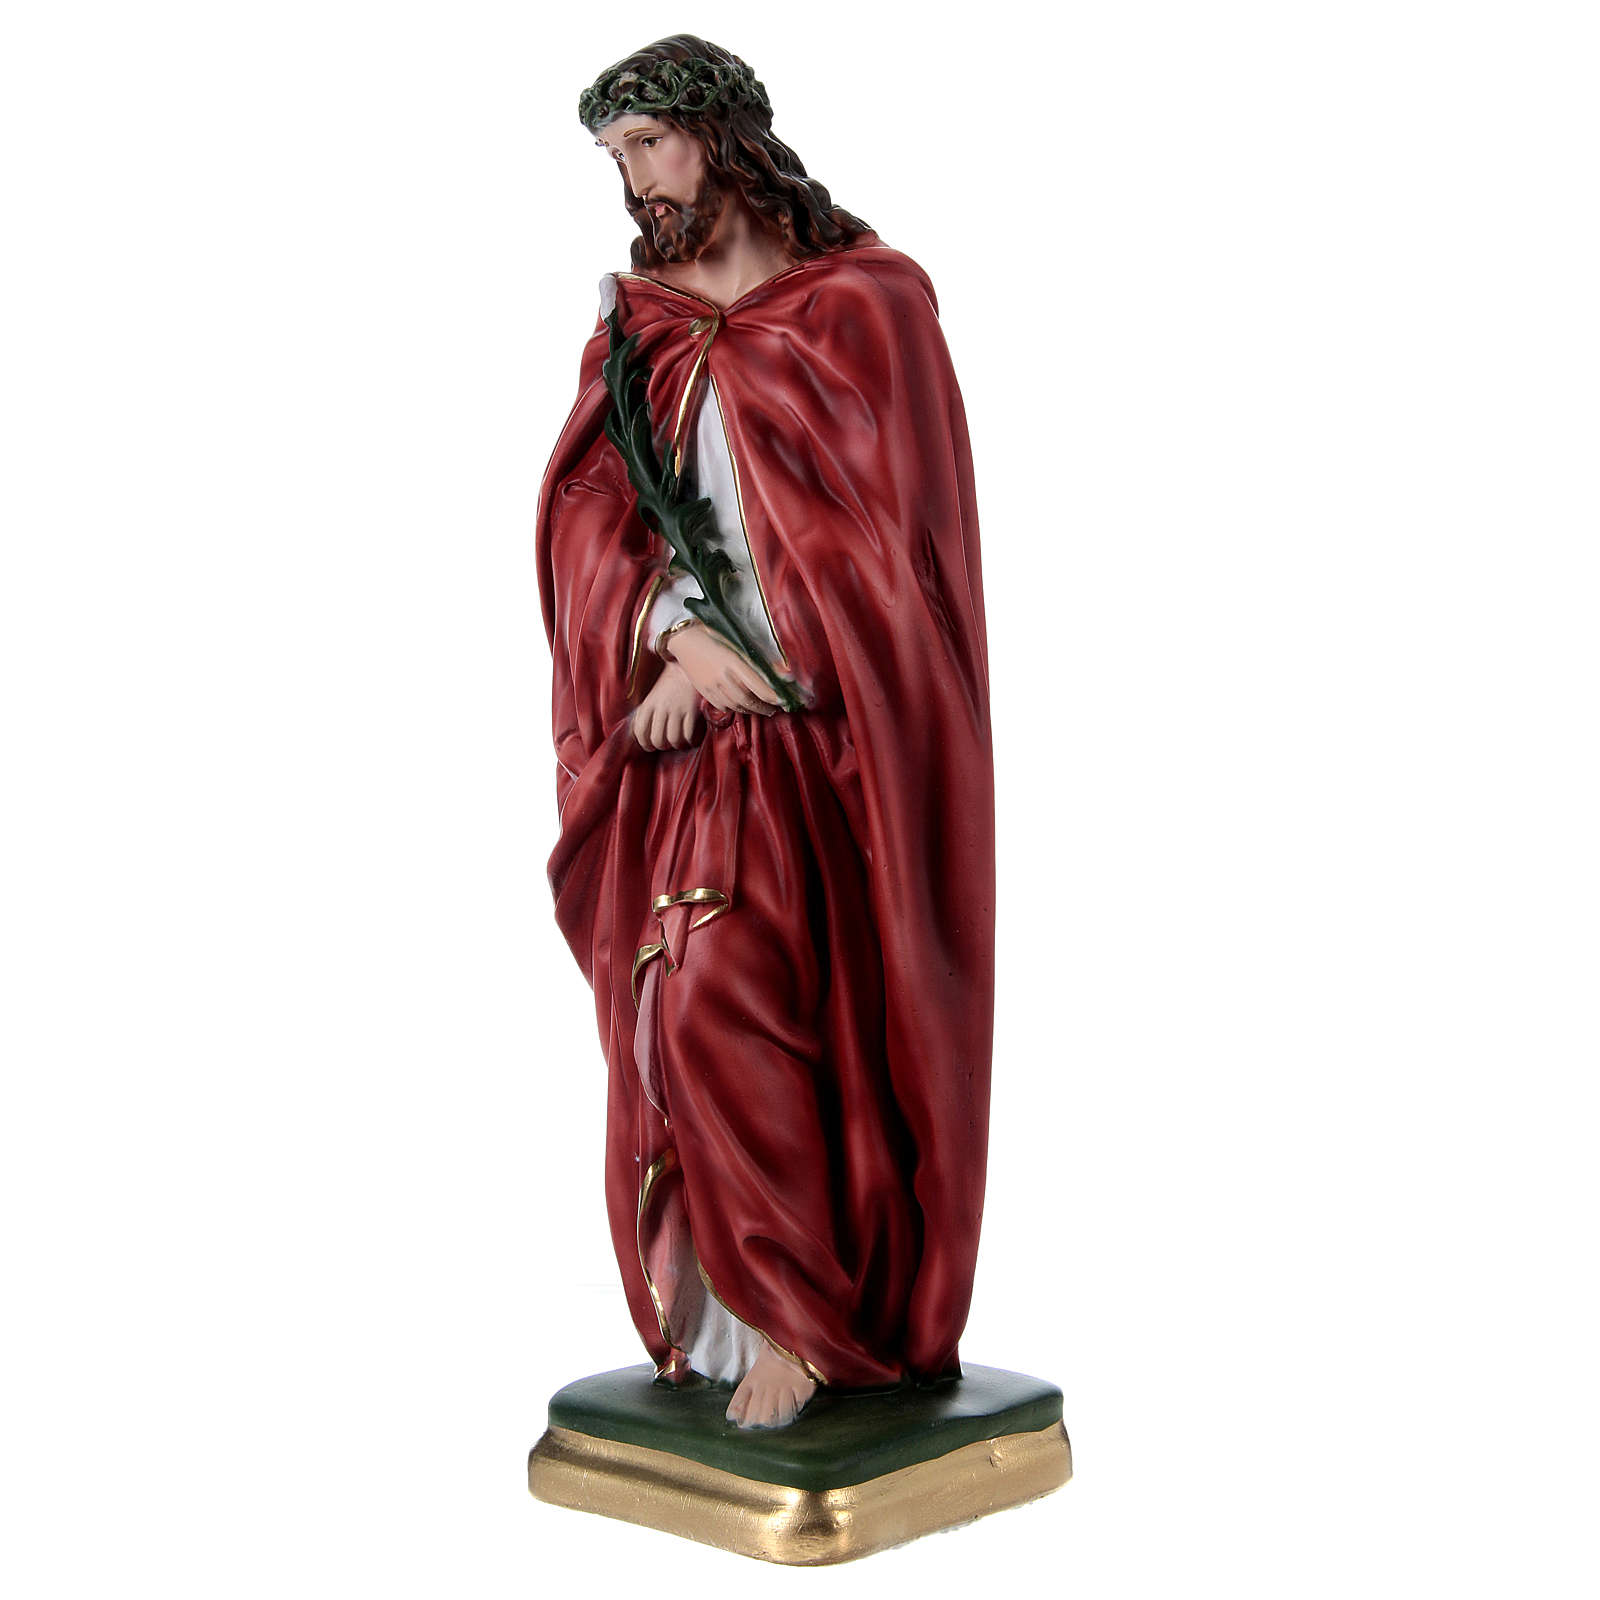 Ecce Homo 40 cm in mother-of-pearl plaster 4